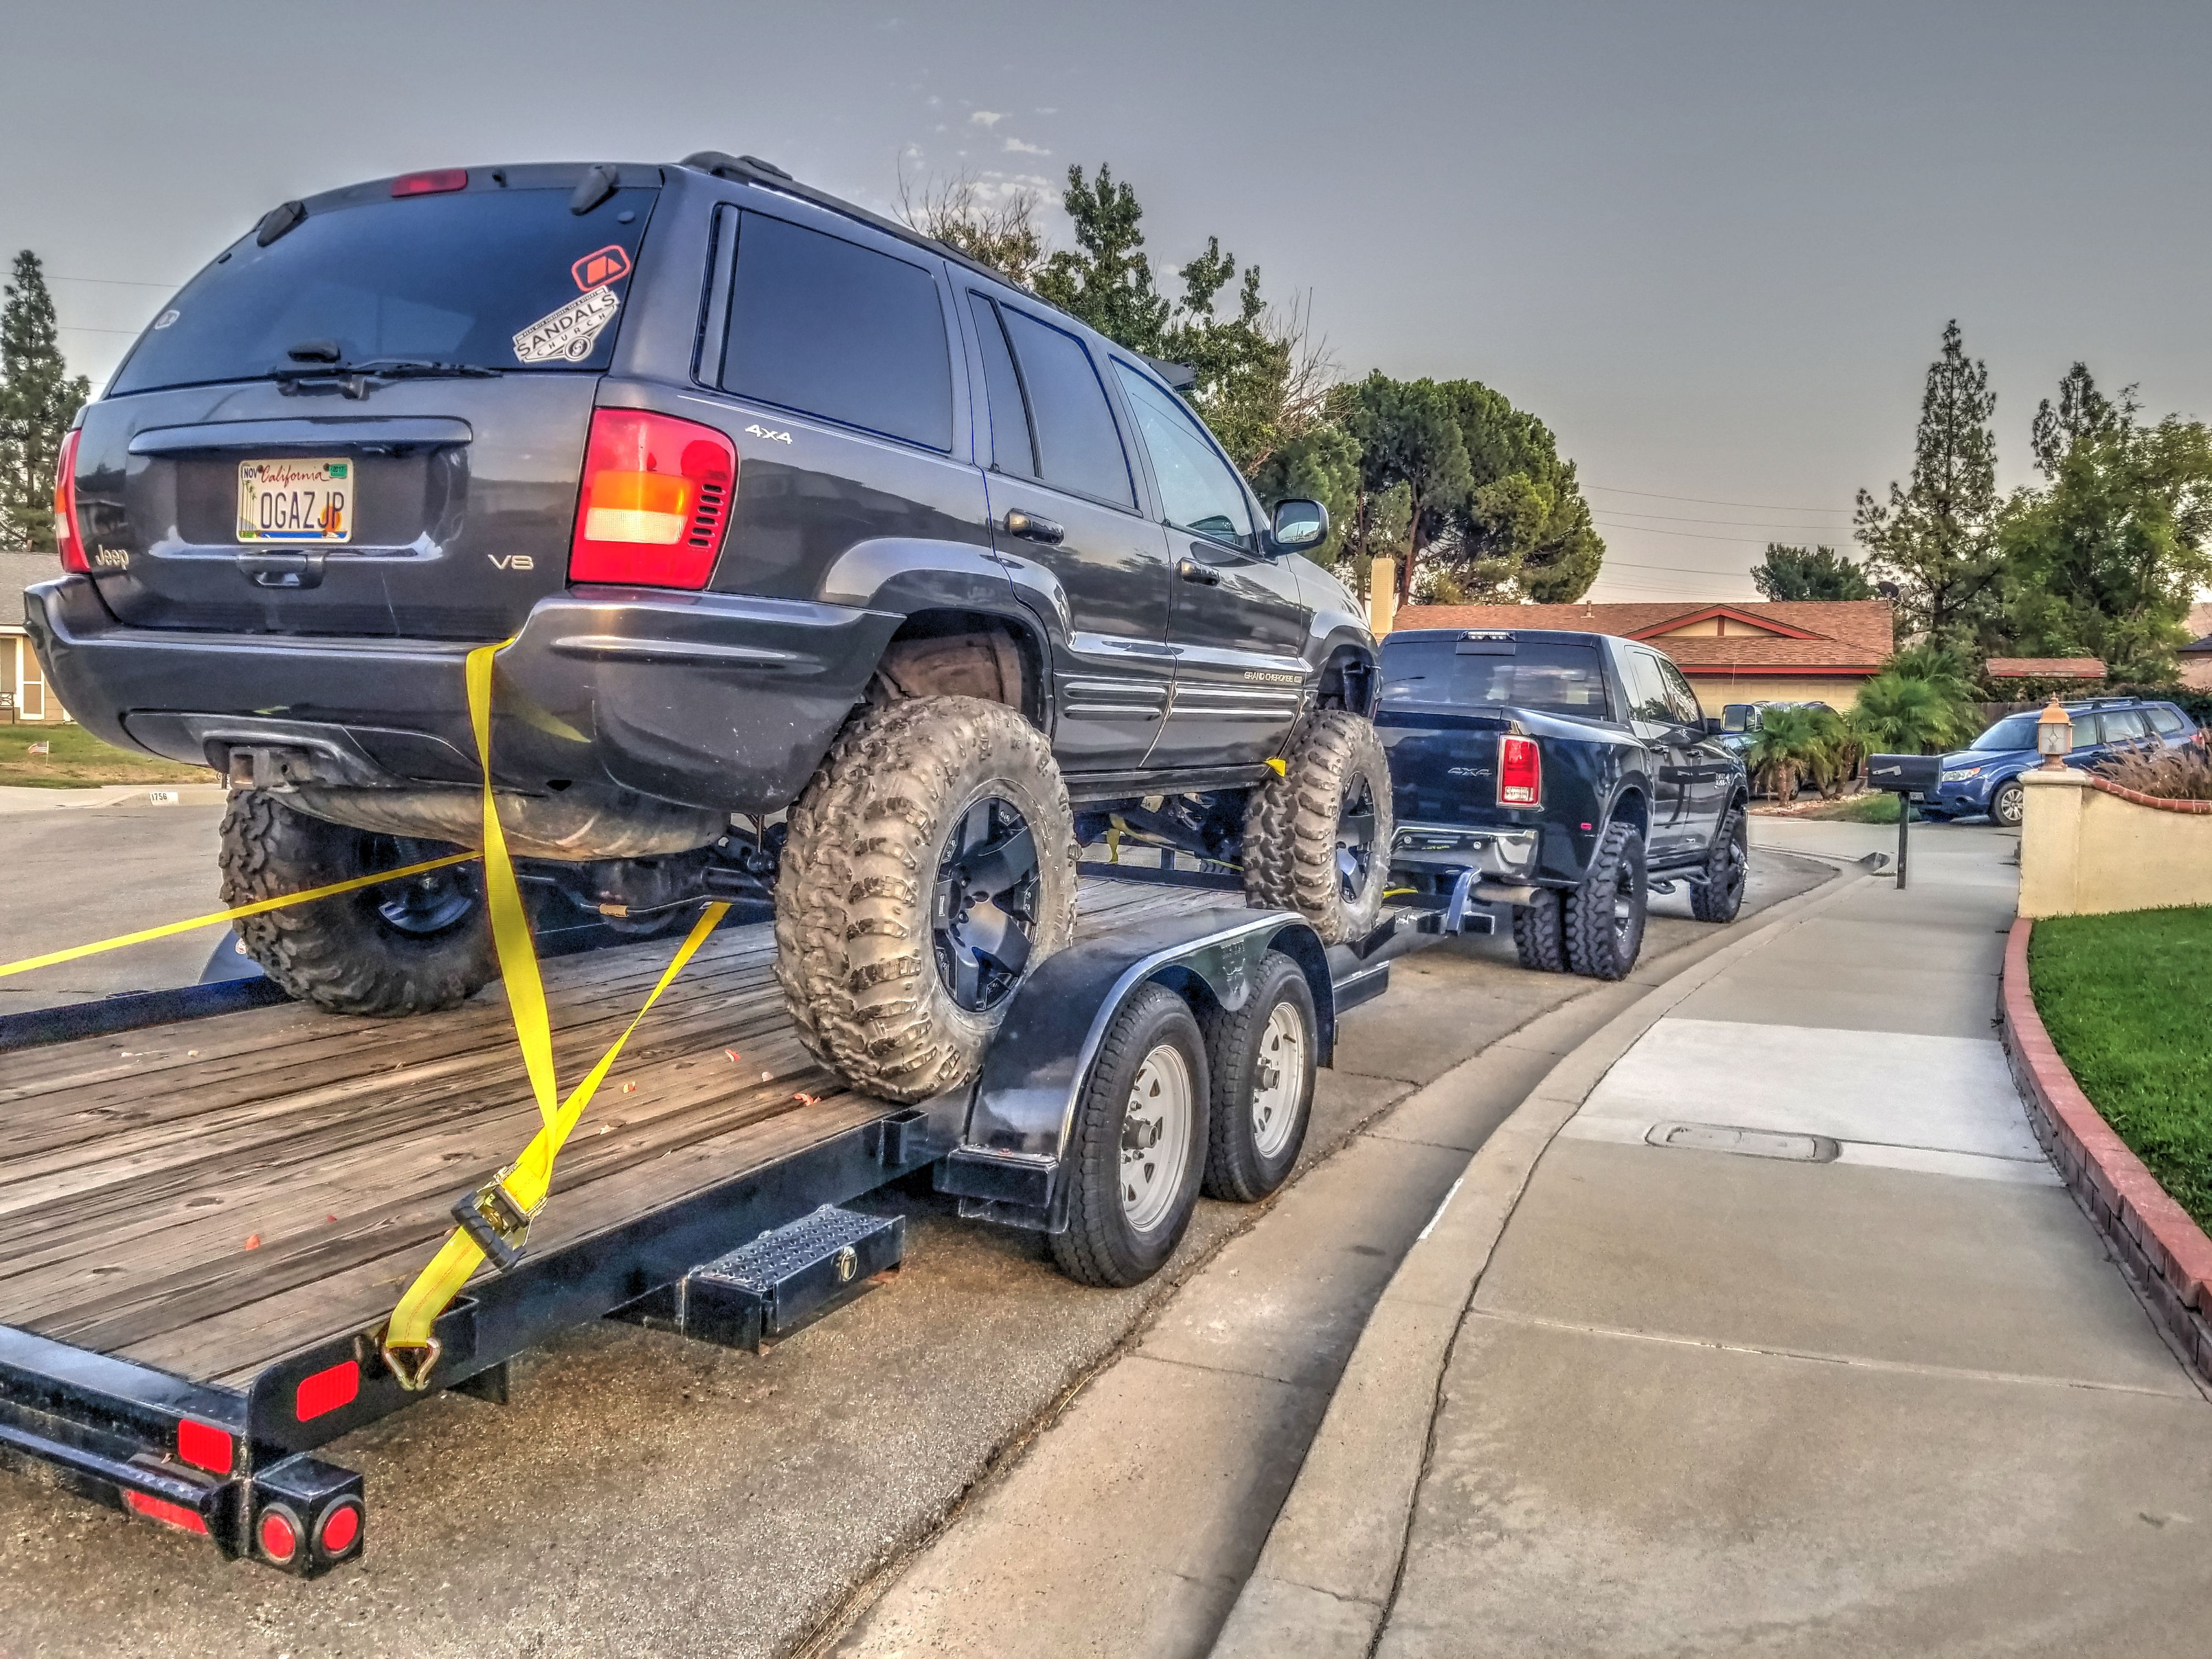 Pin By Brad Blackwell On All Things Jeep Jeep Wj Jeep Jeep